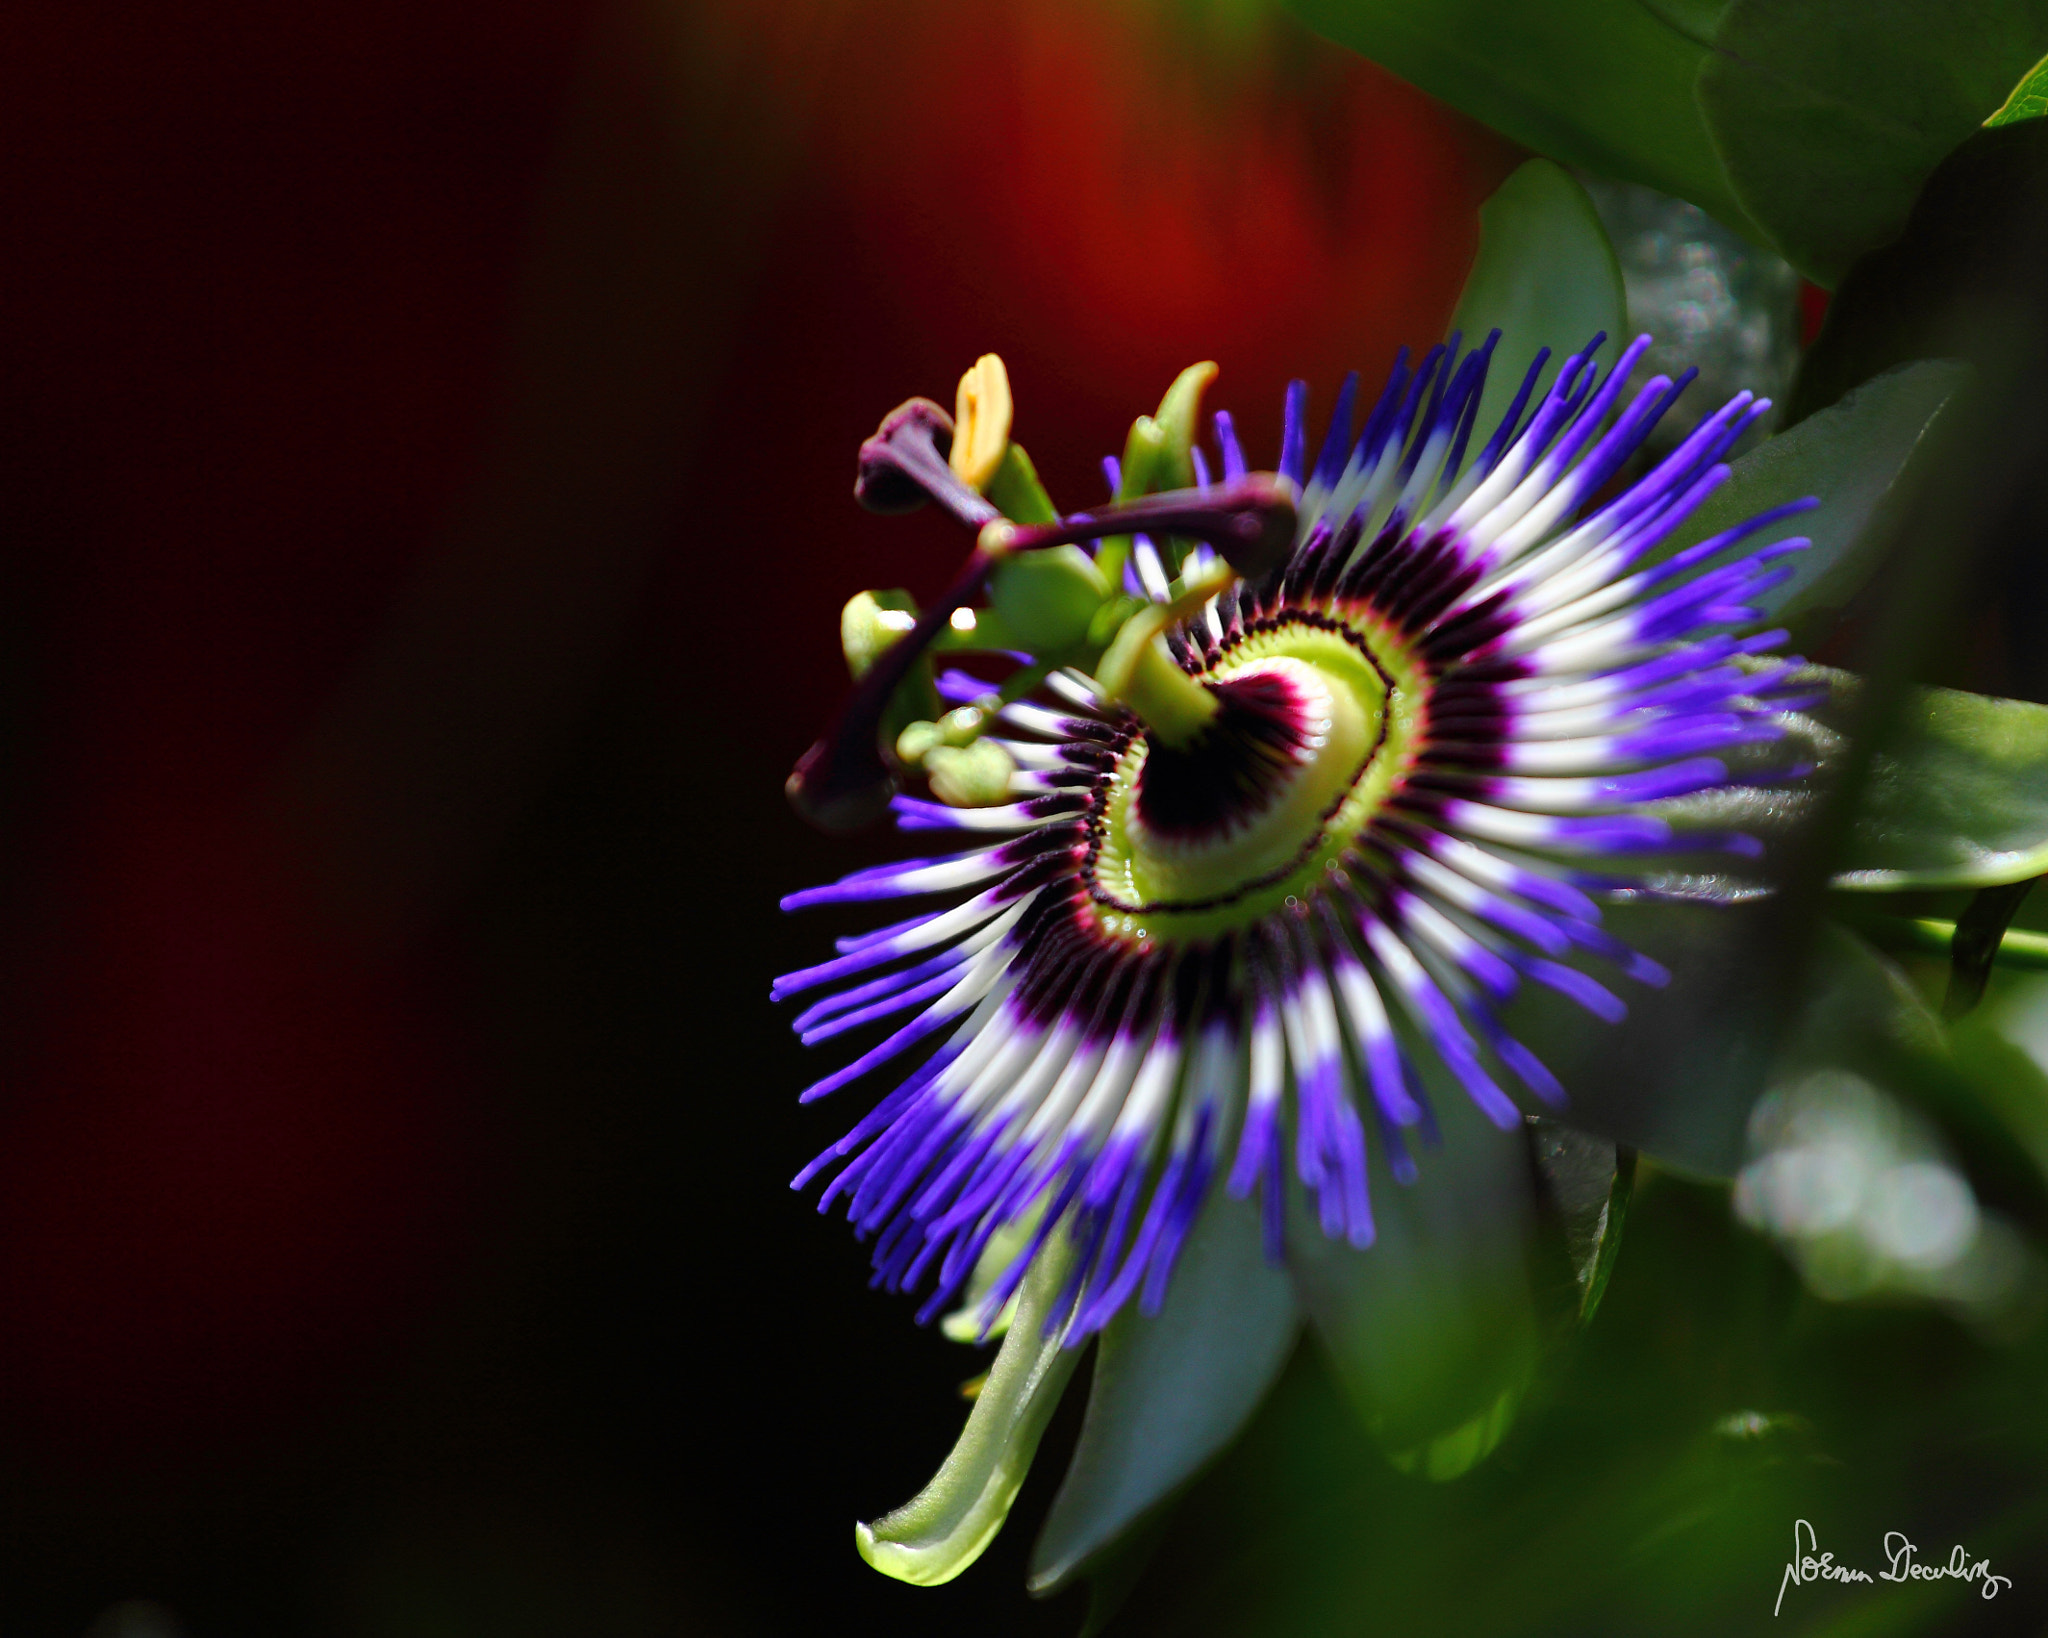 Photograph Passion Fruit Blossom by Norman Deculing on 500px